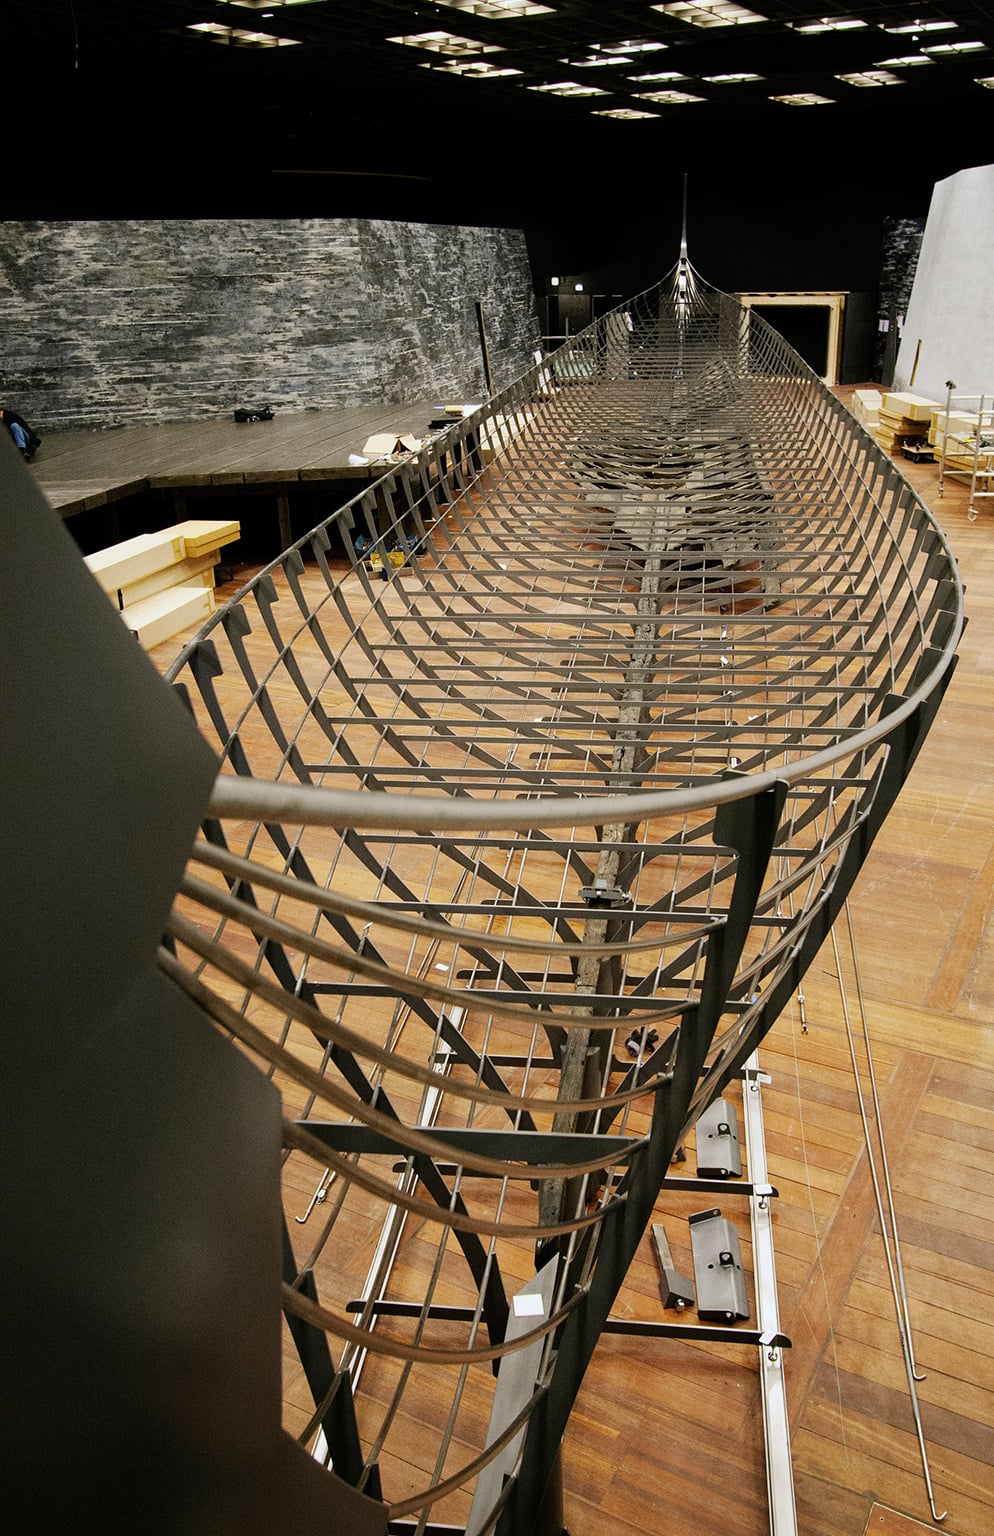 Roskilde 6 i Egmonthallen set fra siden Foto nationalmuseet.The Longship (Roskilde 6). The largest Viking ship ever discovered. The thirty-seven meter long warship was built in southern Norway around 1025, and deliberately sunk in Denmark in the mid-11th